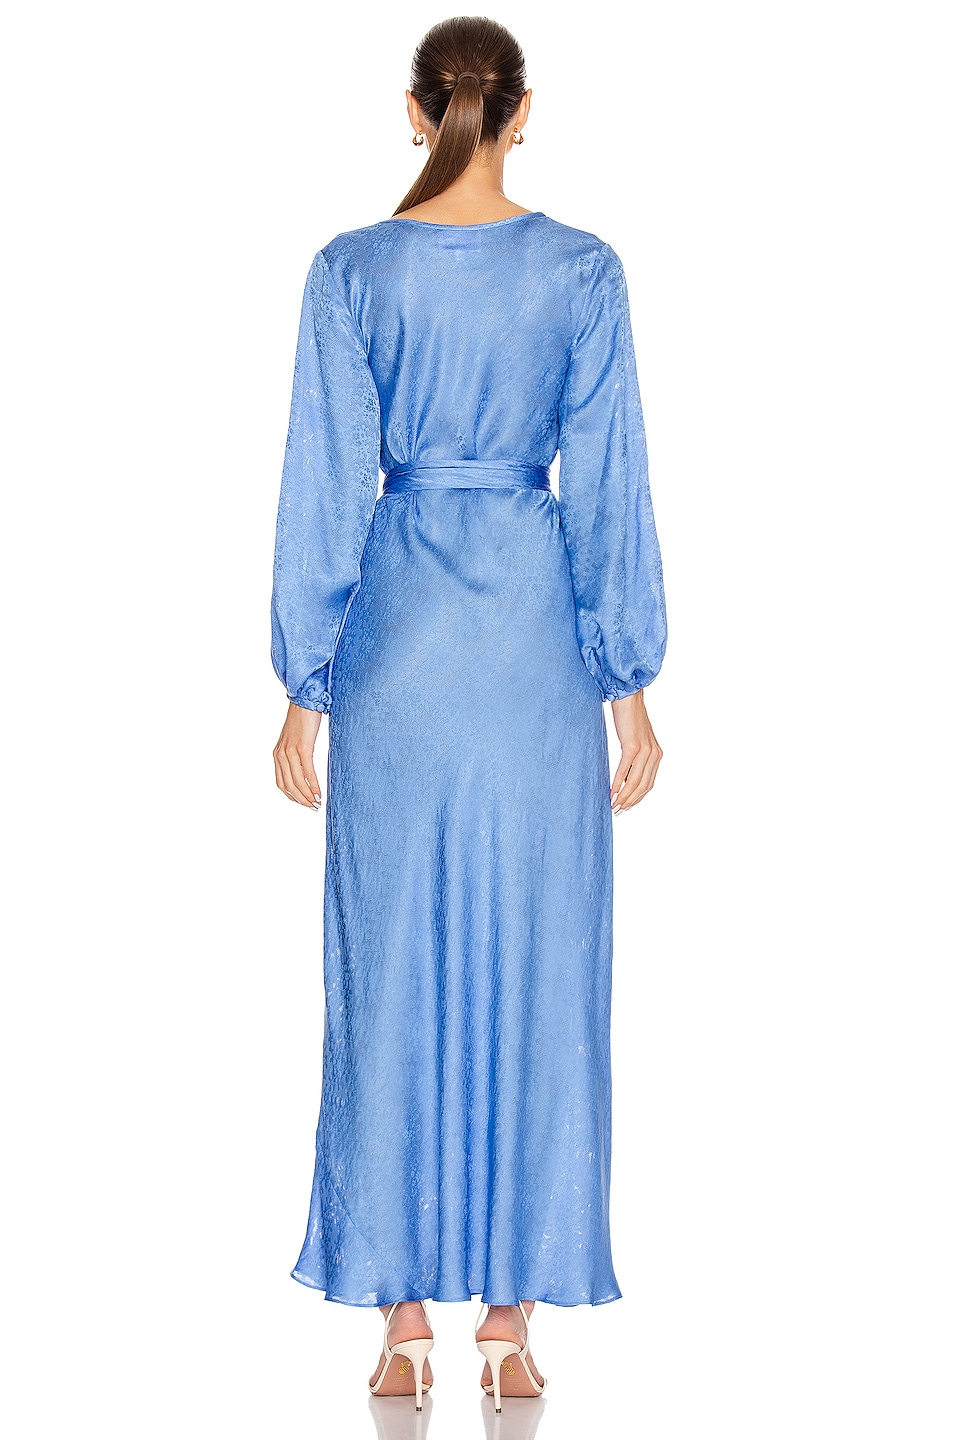 Image 3 of Rebecca De Ravenel Bias Dress in Periwinkle Blue